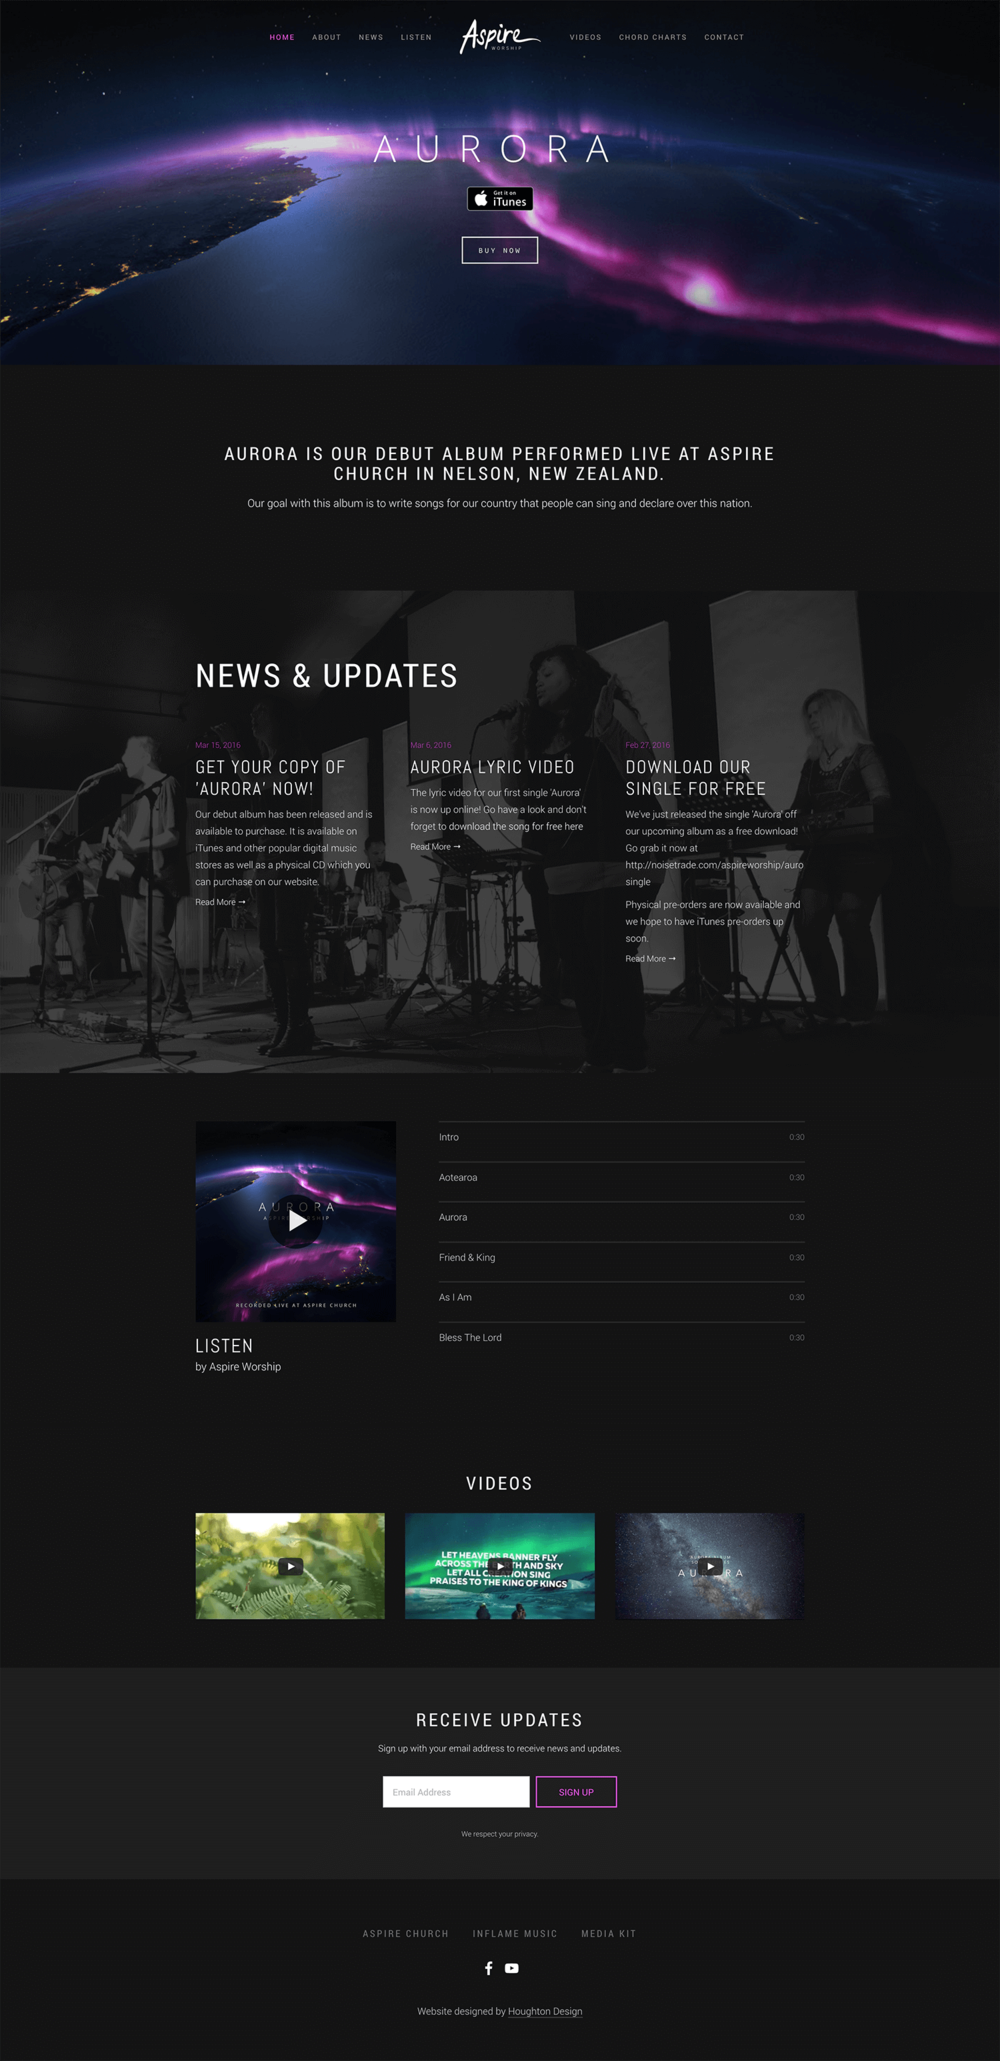 Aspire Worship - Front Page